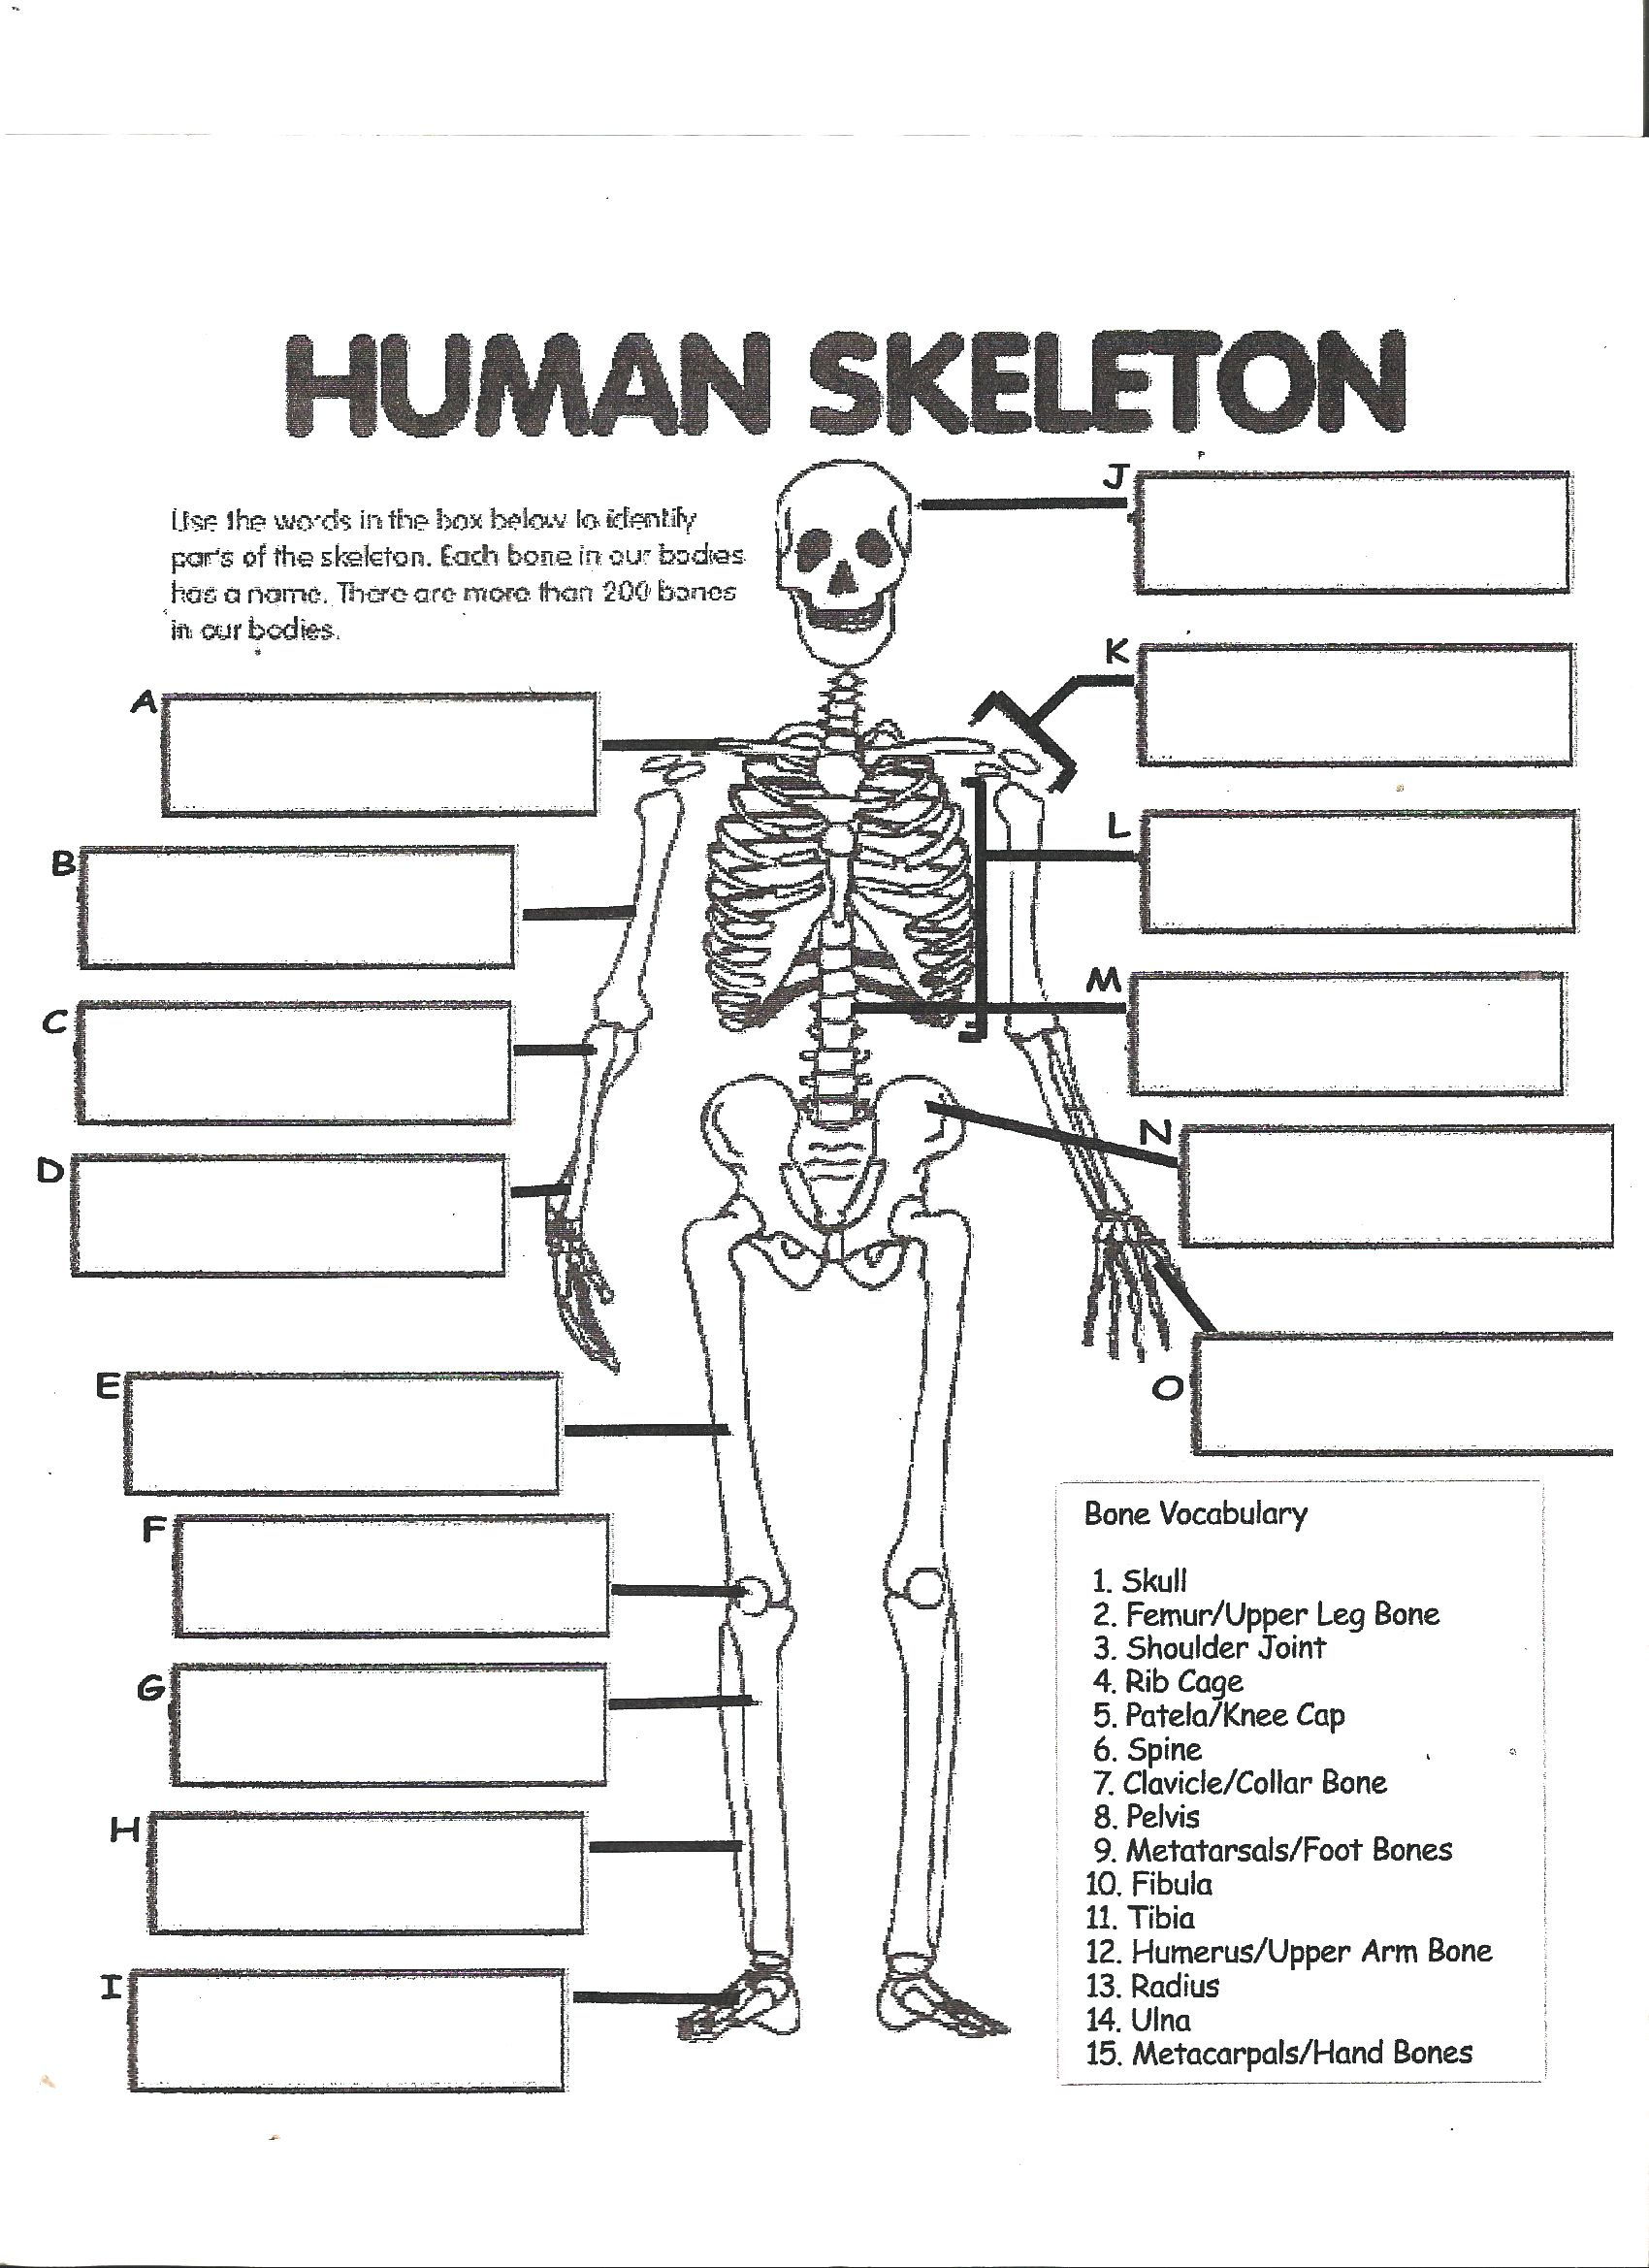 digestive system labeling worksheet answers human skeleton worksheet worksheets pinterest. Black Bedroom Furniture Sets. Home Design Ideas